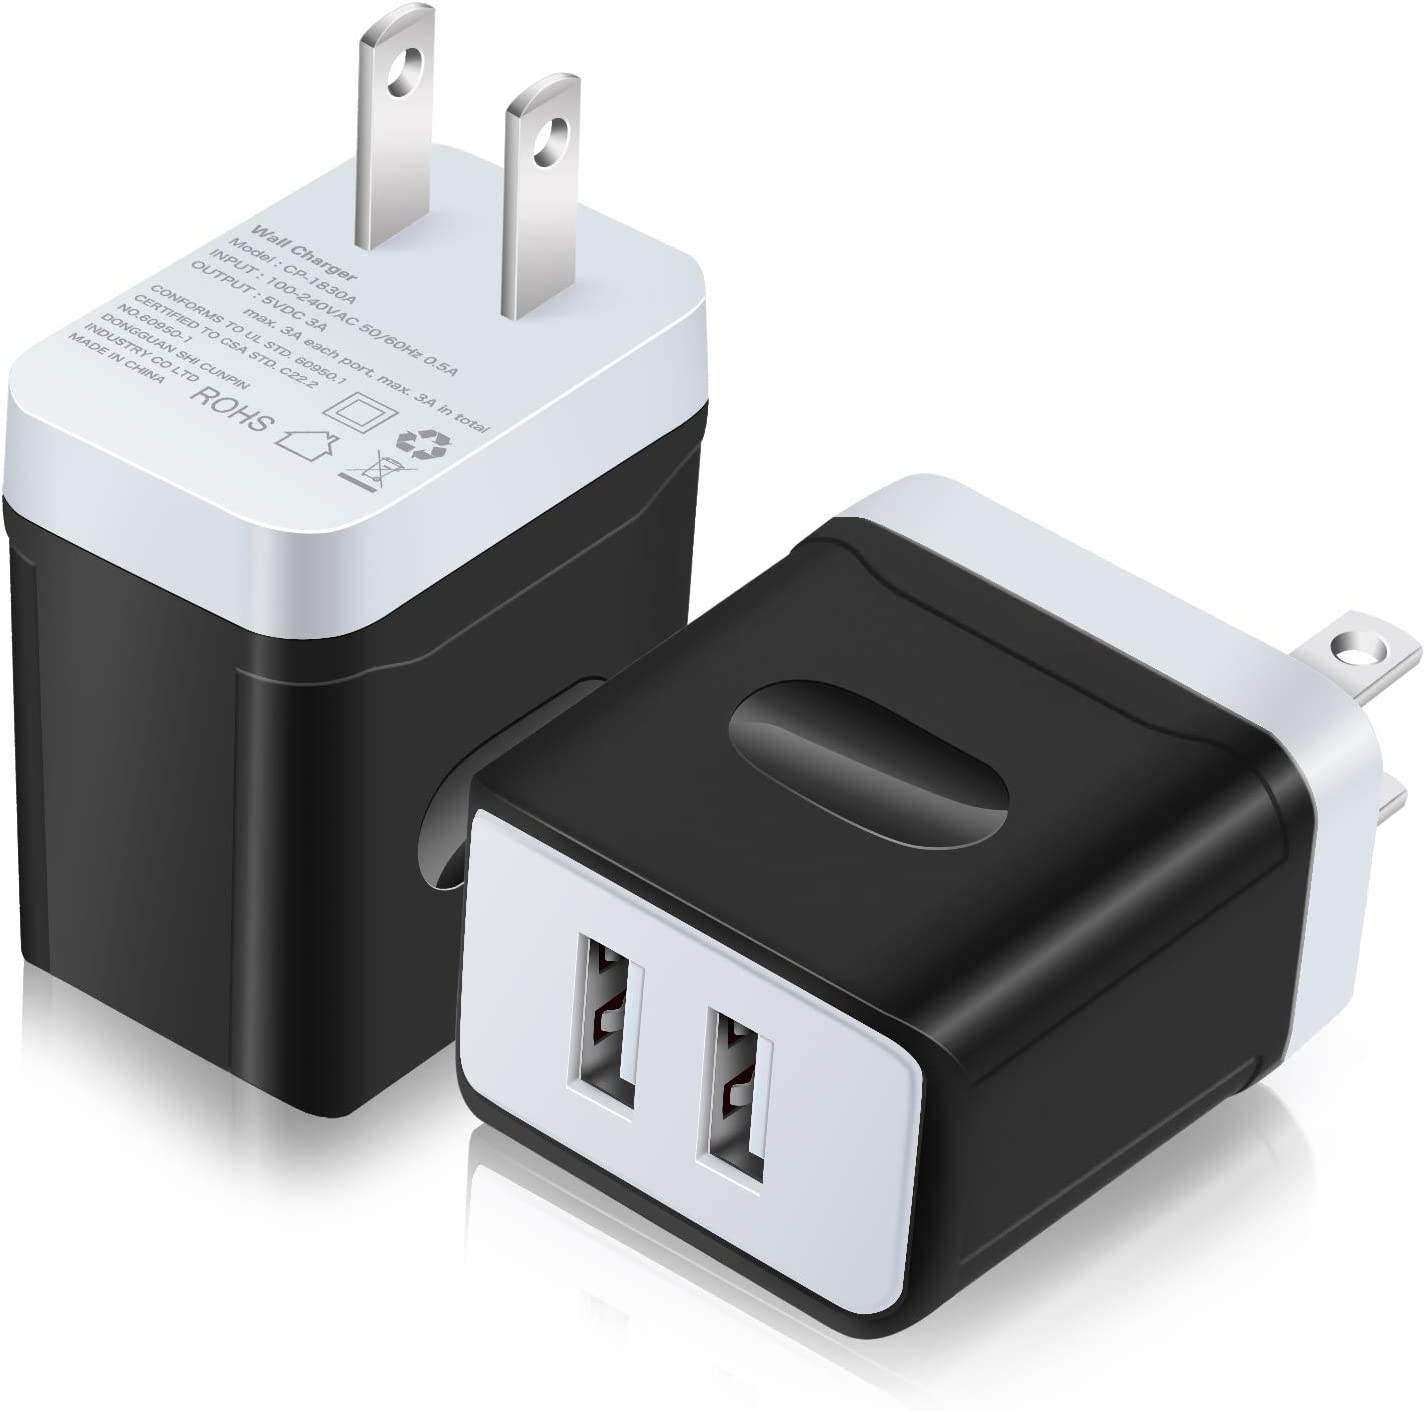 USB Plug, Costyle 2 Pack 3.1A 5V Dual 2 USB Port Home Travel Cell Phone Charger Compatible iPhone X 8 7 6 6s Plus se, Samsung Galaxy s7 Edge Note 8, OnePlus 6, Sony XZ Walkman, Switch (Black)